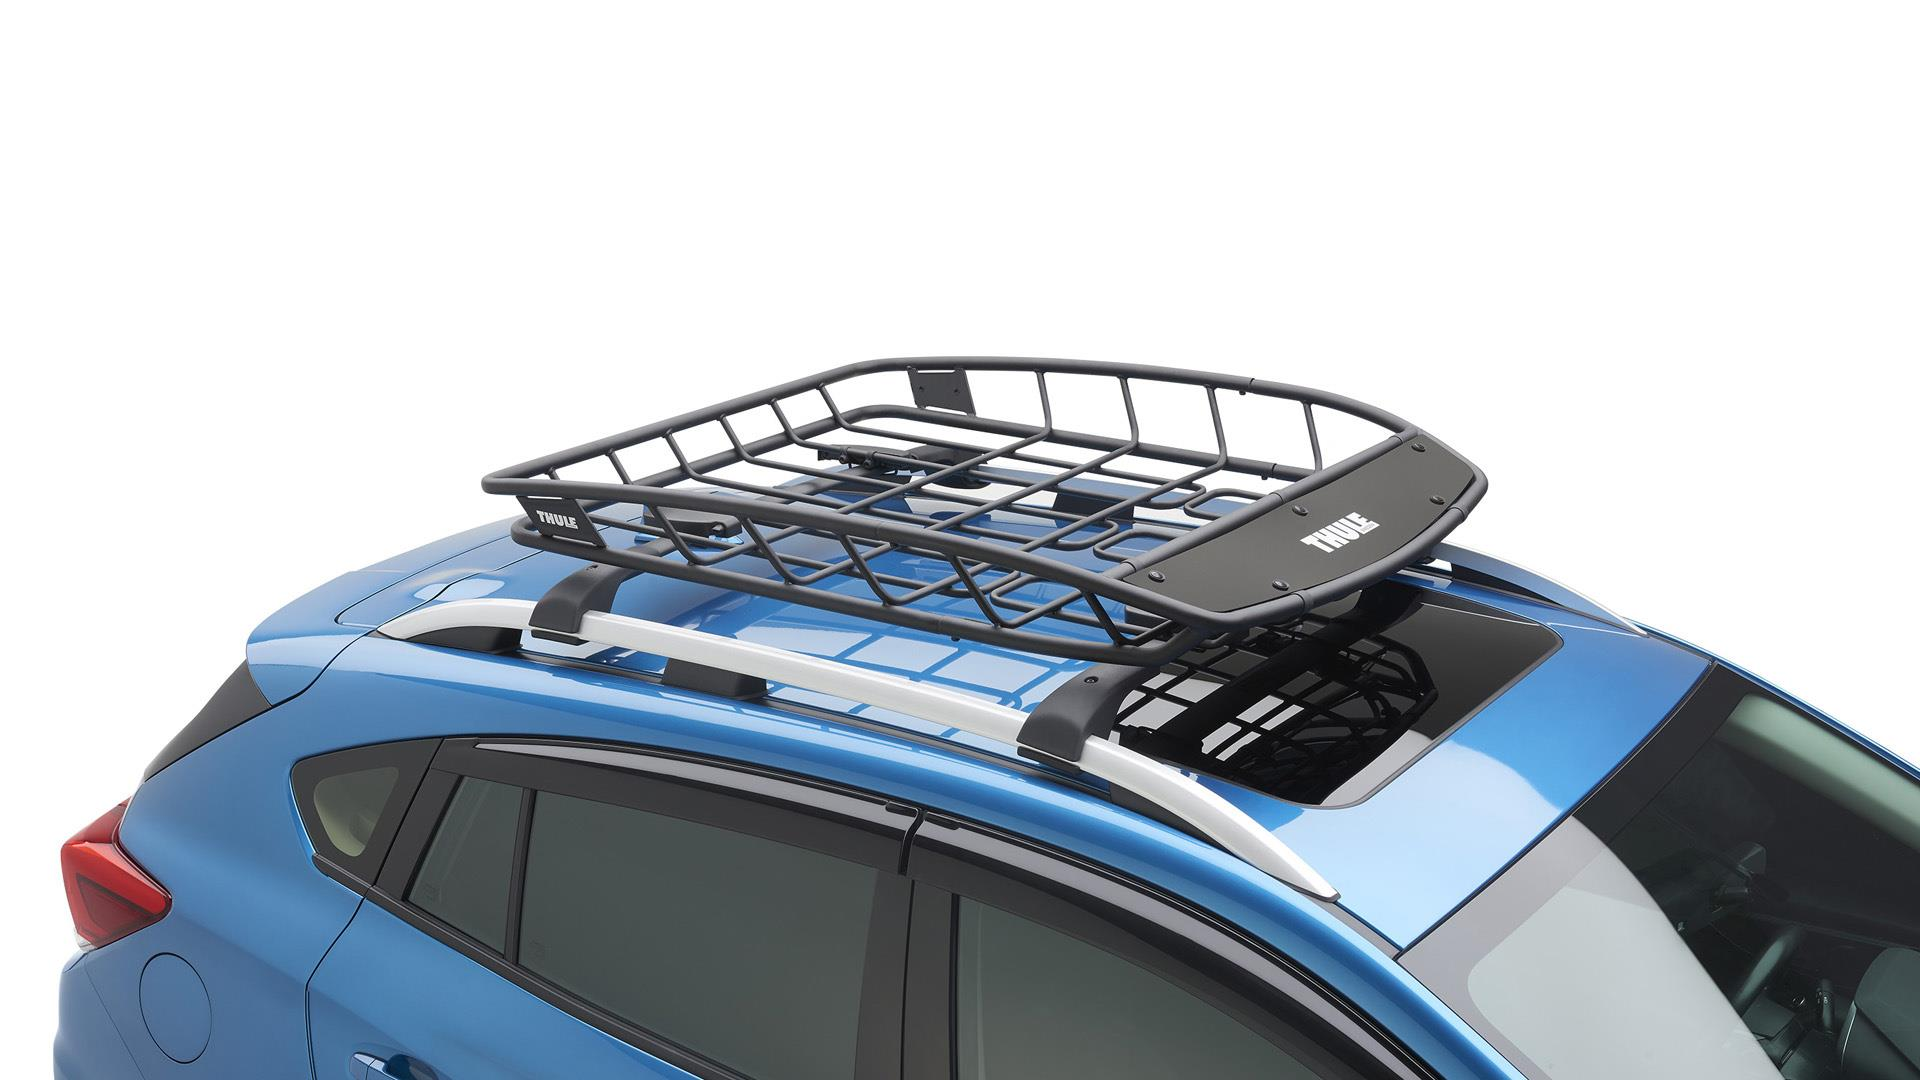 2017 subaru outback thule heavy duty cargo basket easy. Black Bedroom Furniture Sets. Home Design Ideas